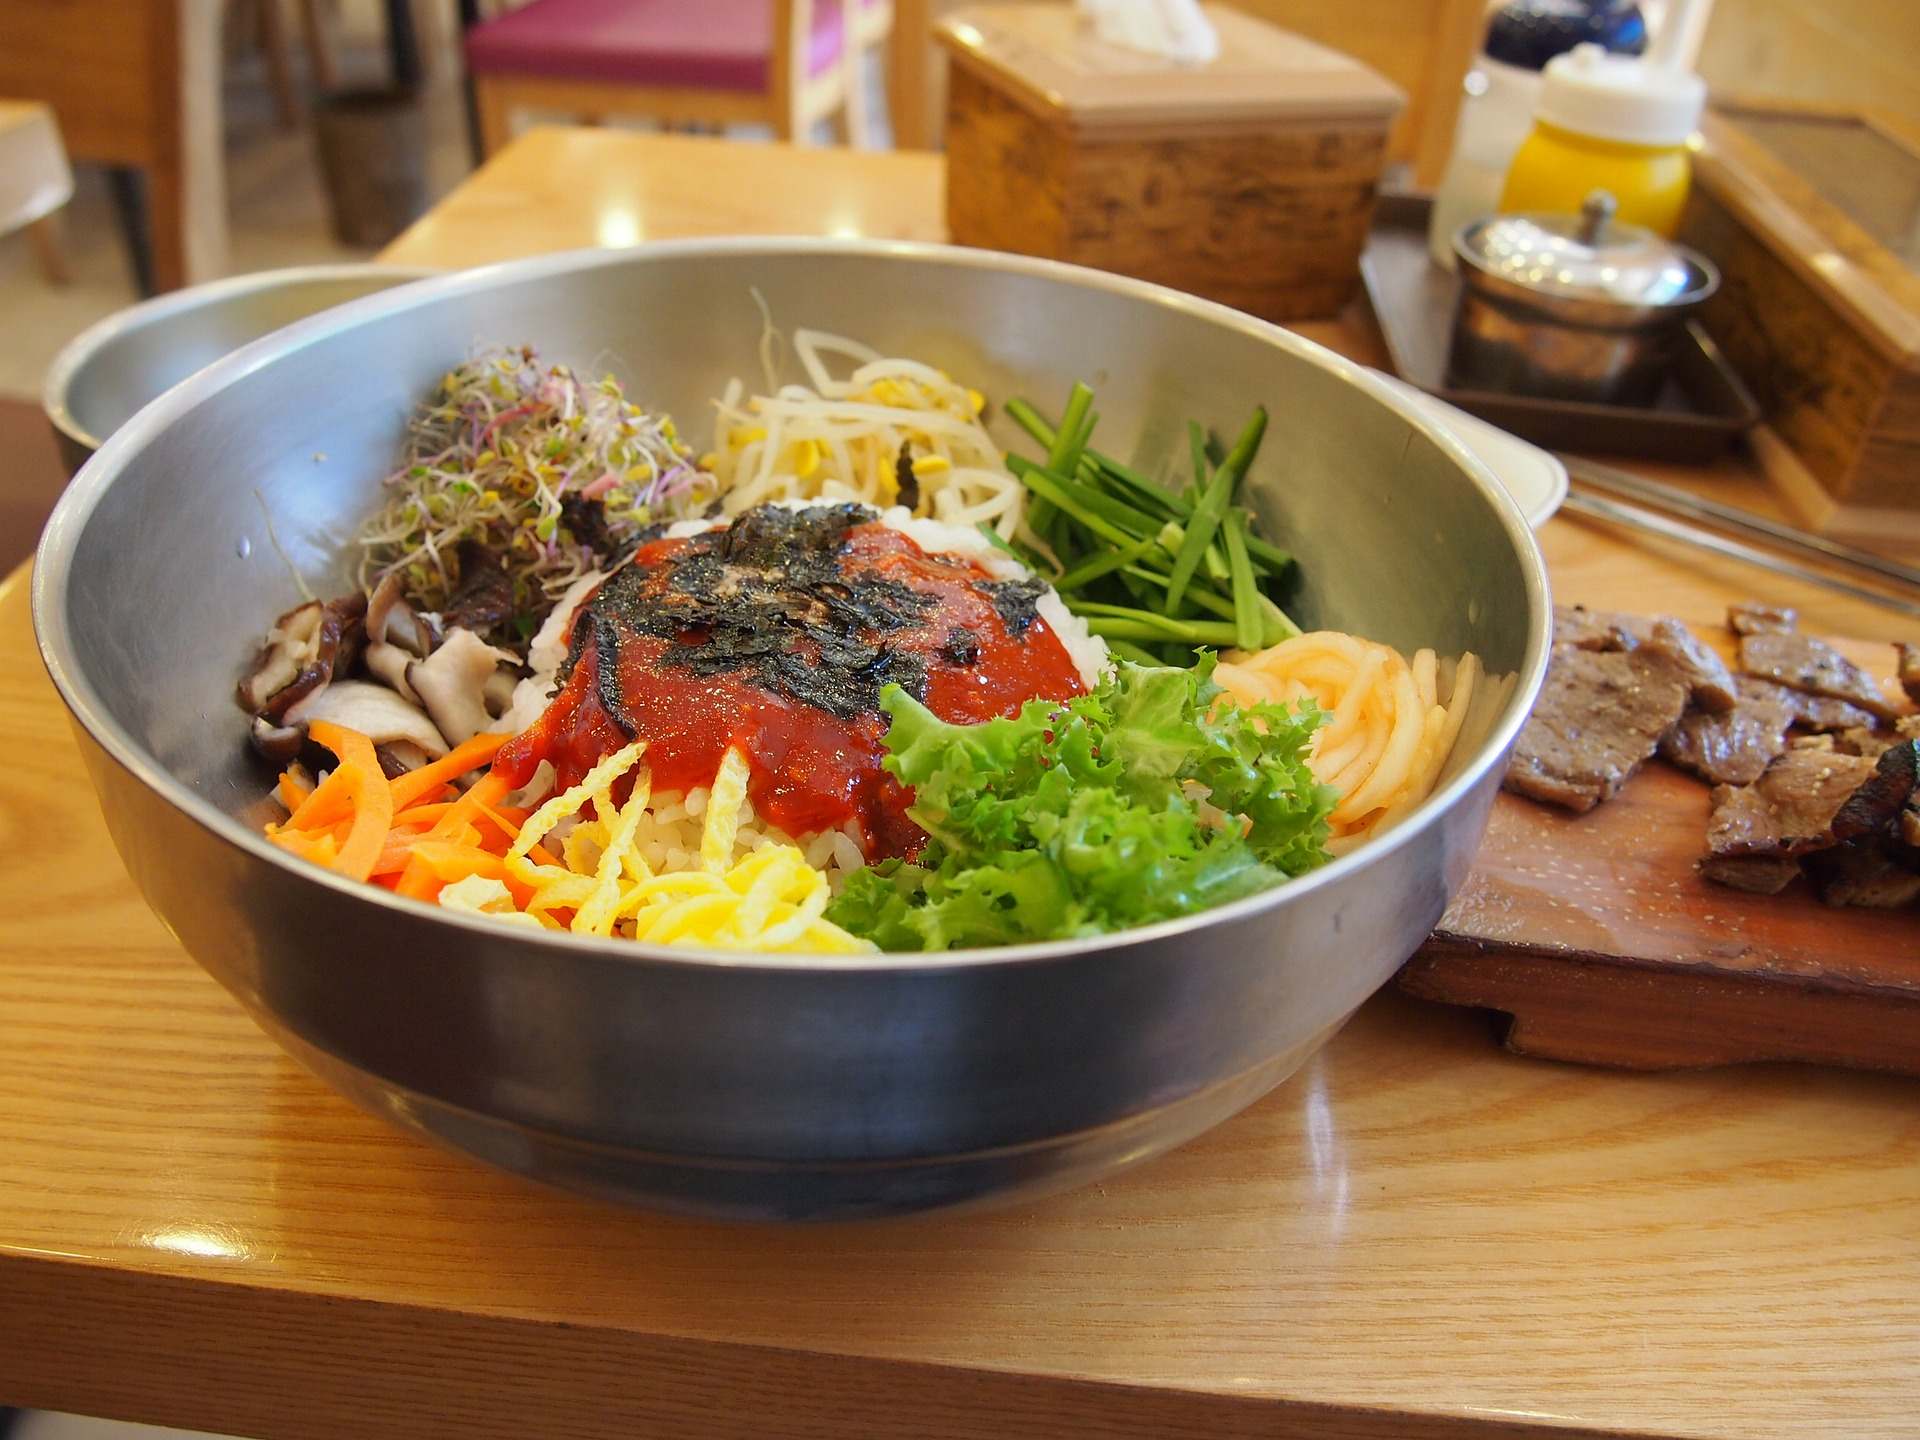 korean-food-3263032_1920